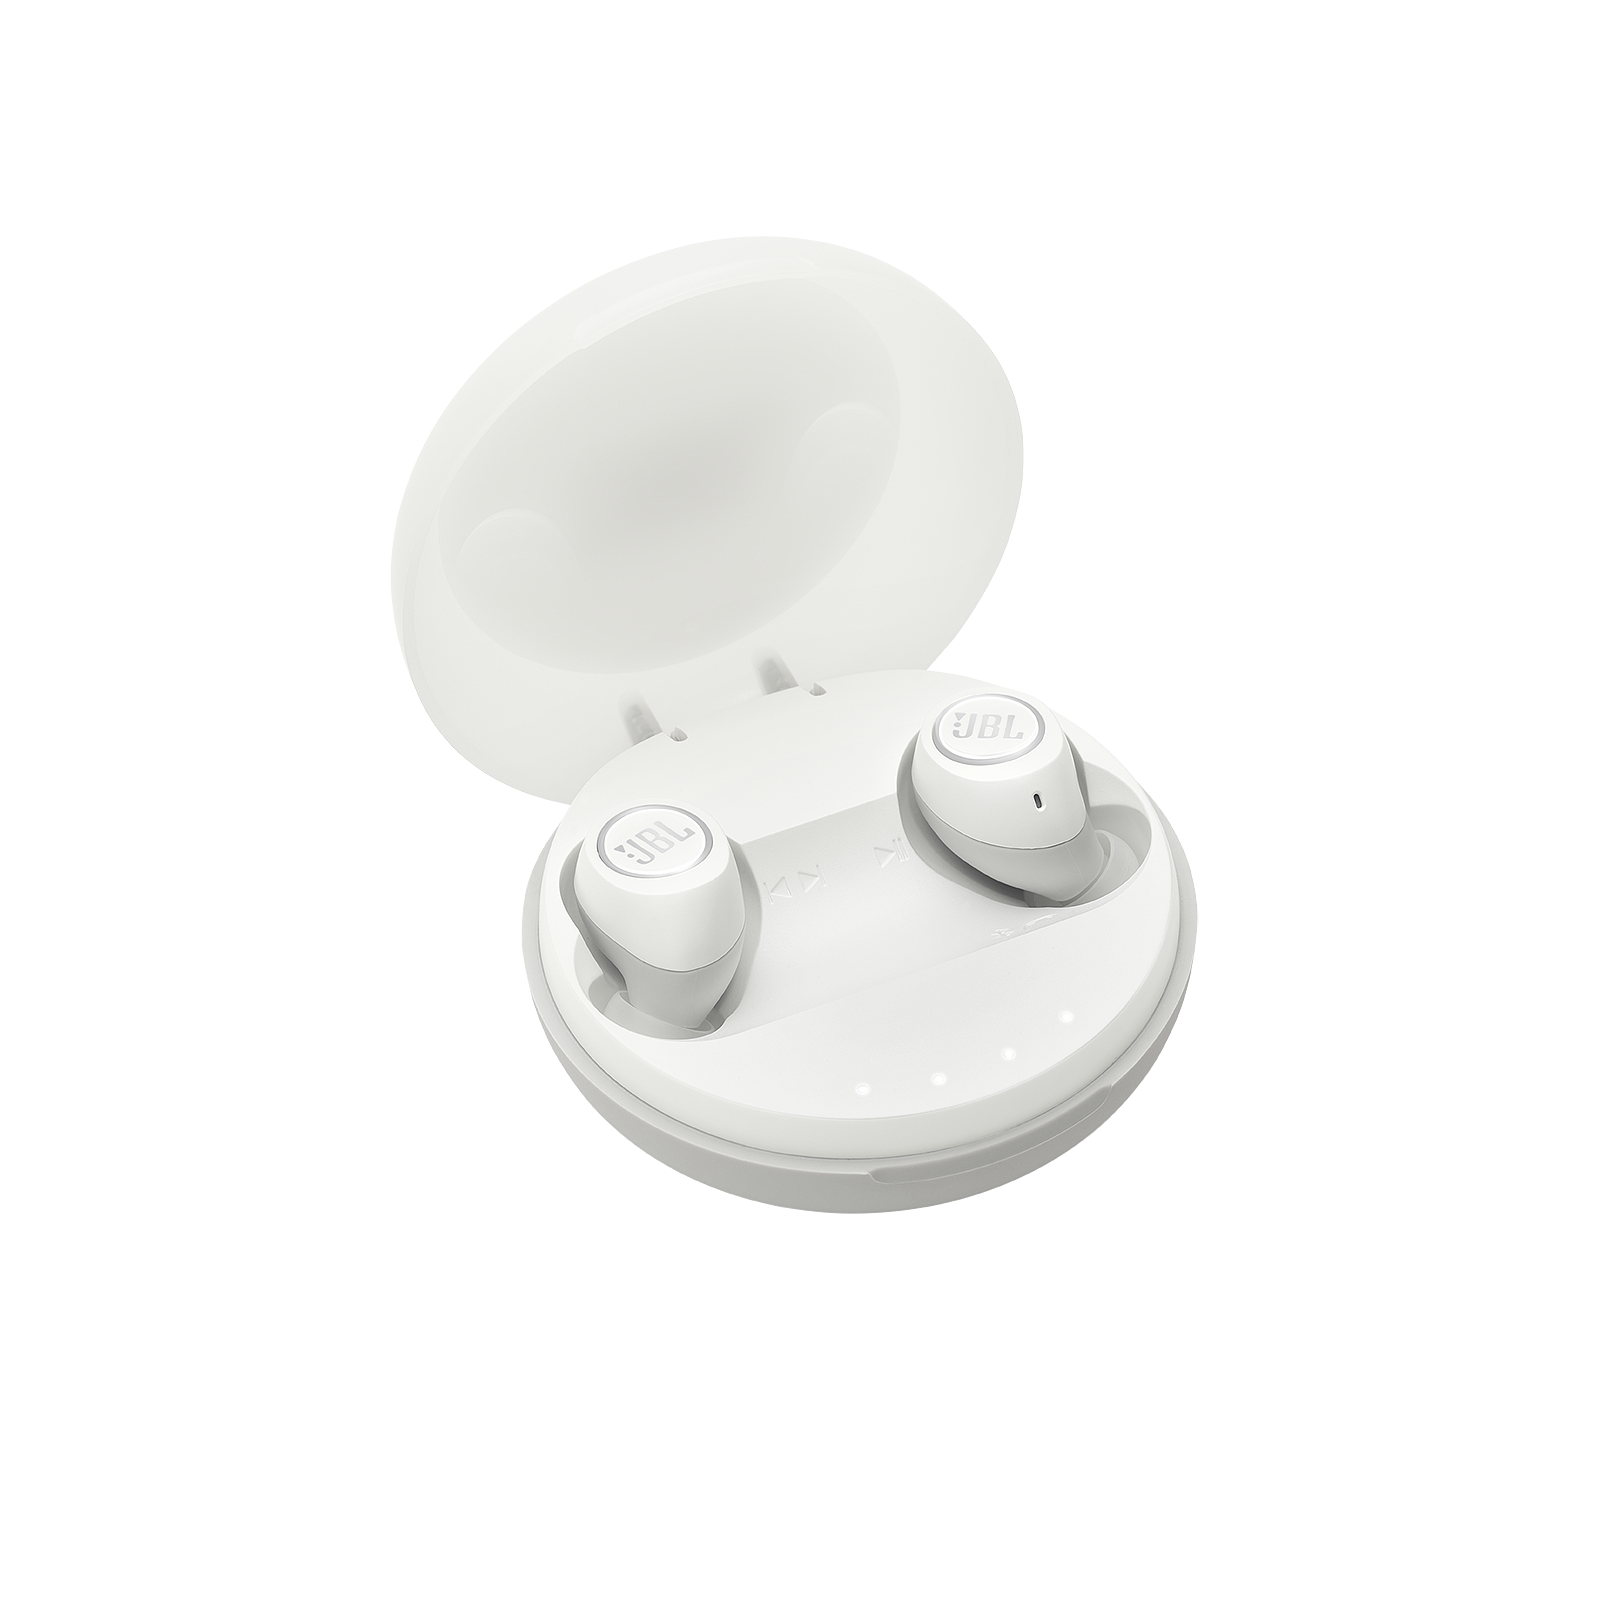 JBL Free X ear buds replacement Kit - White - JBL FREE replacement units - Hero